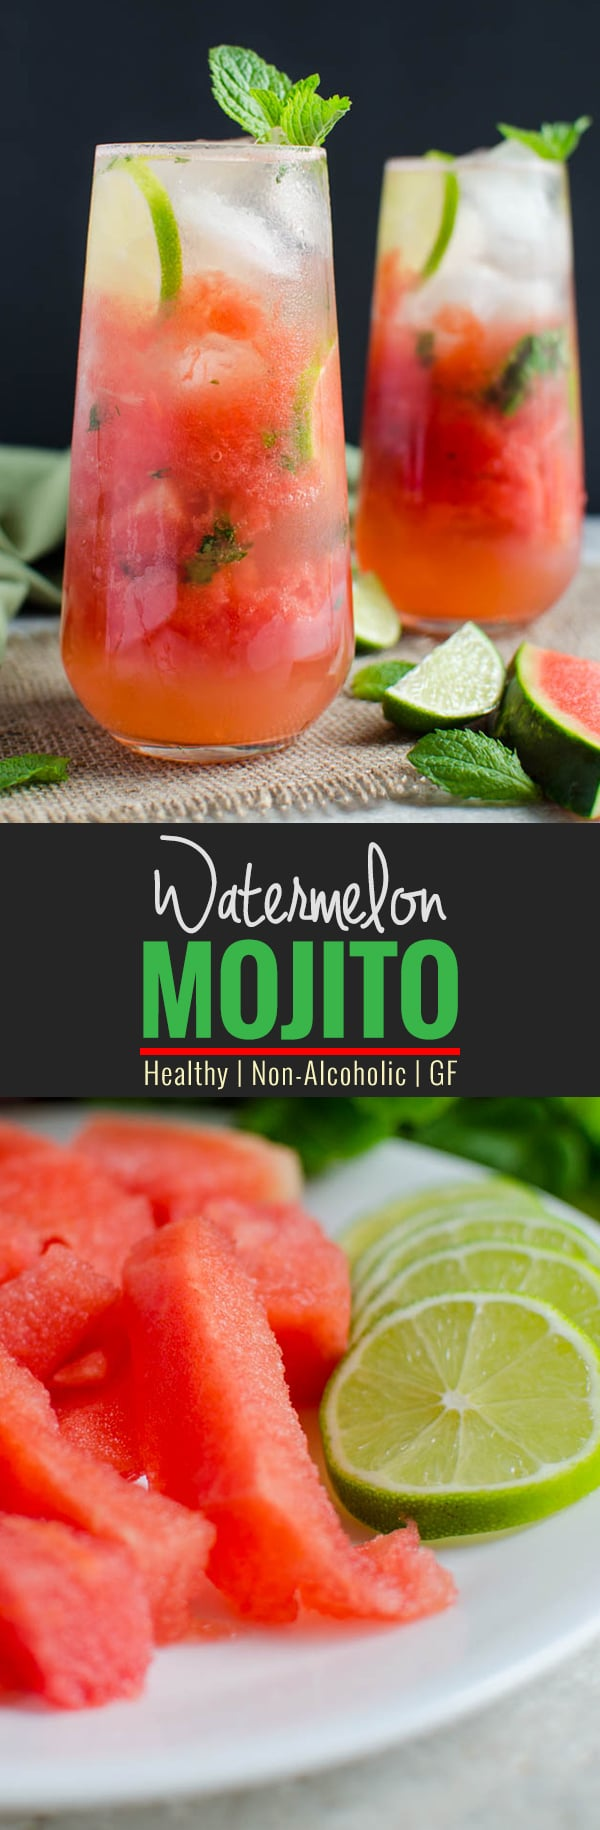 Watermelon Mojito Recipe- Give refreshing twist to fresh watermelons. It is healthy, naturally sweetened and non-alcoholic drink. Can easily turned into alcoholic drink if you want to | watchwhatueat.com